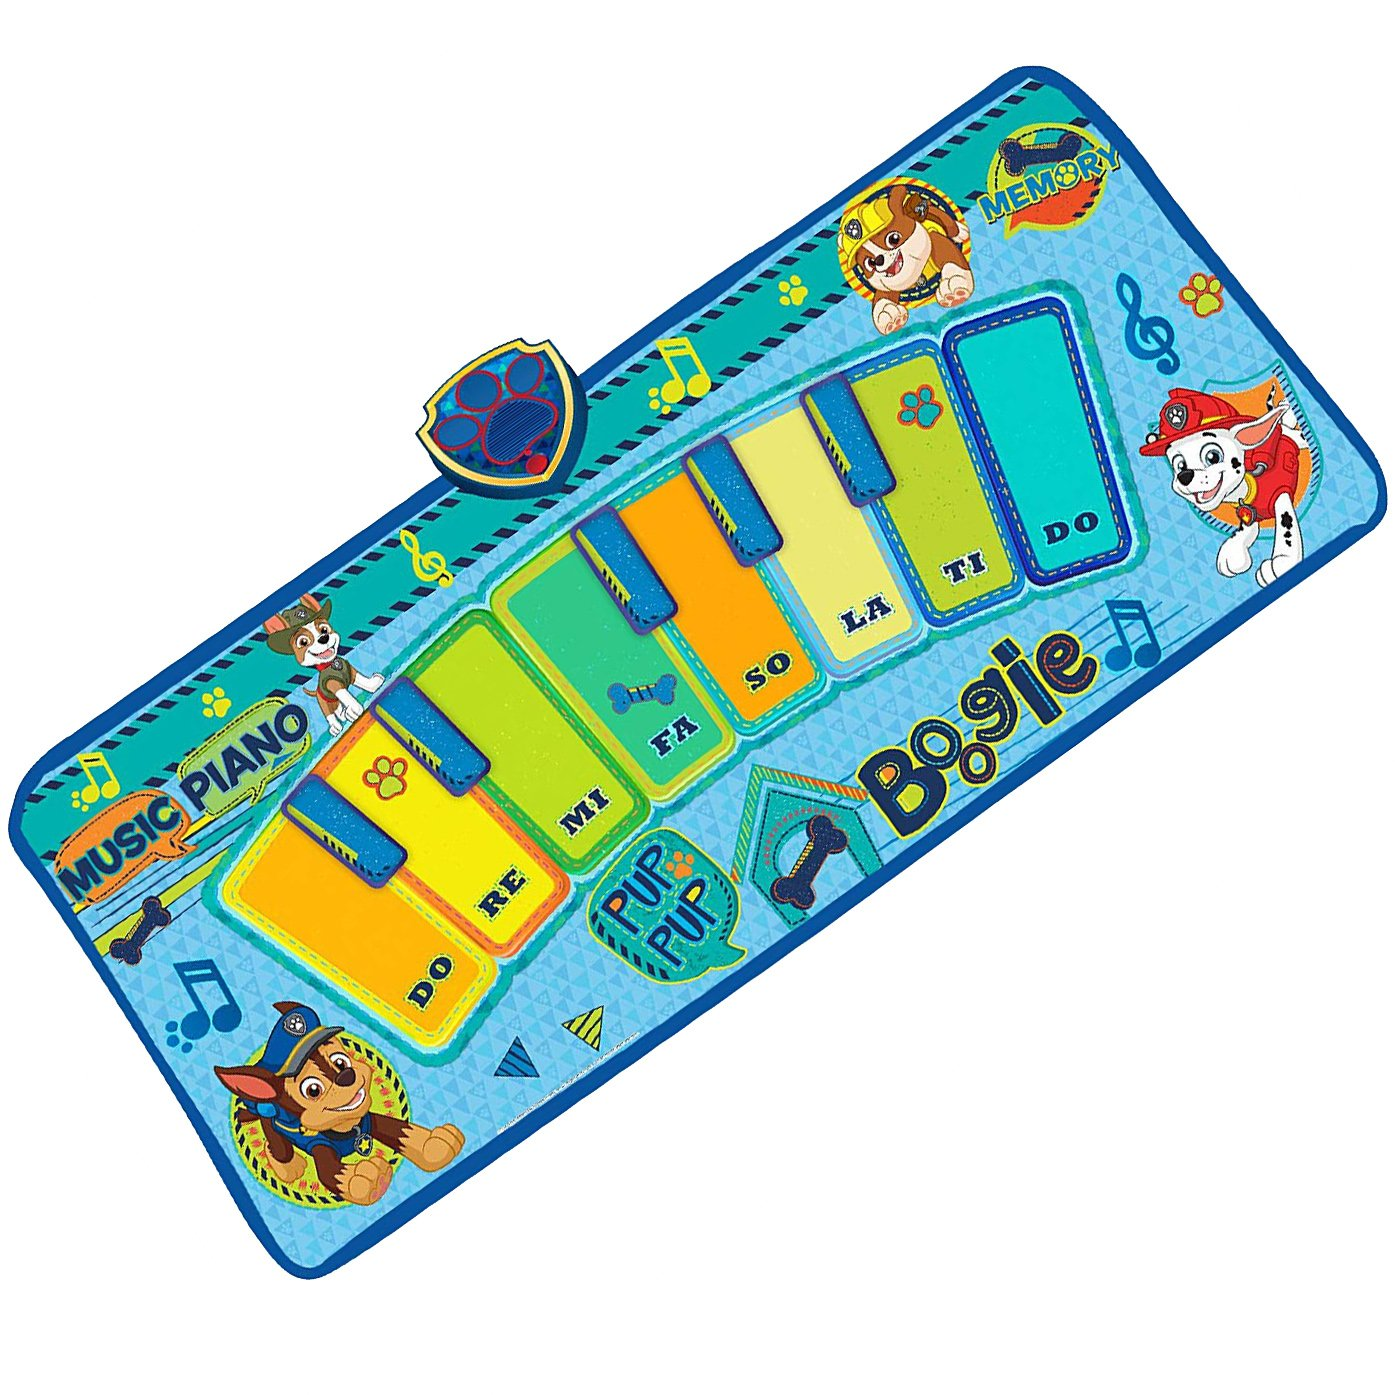 Nickelodeon Paw Patrol Electronic Music Dance Play Mat